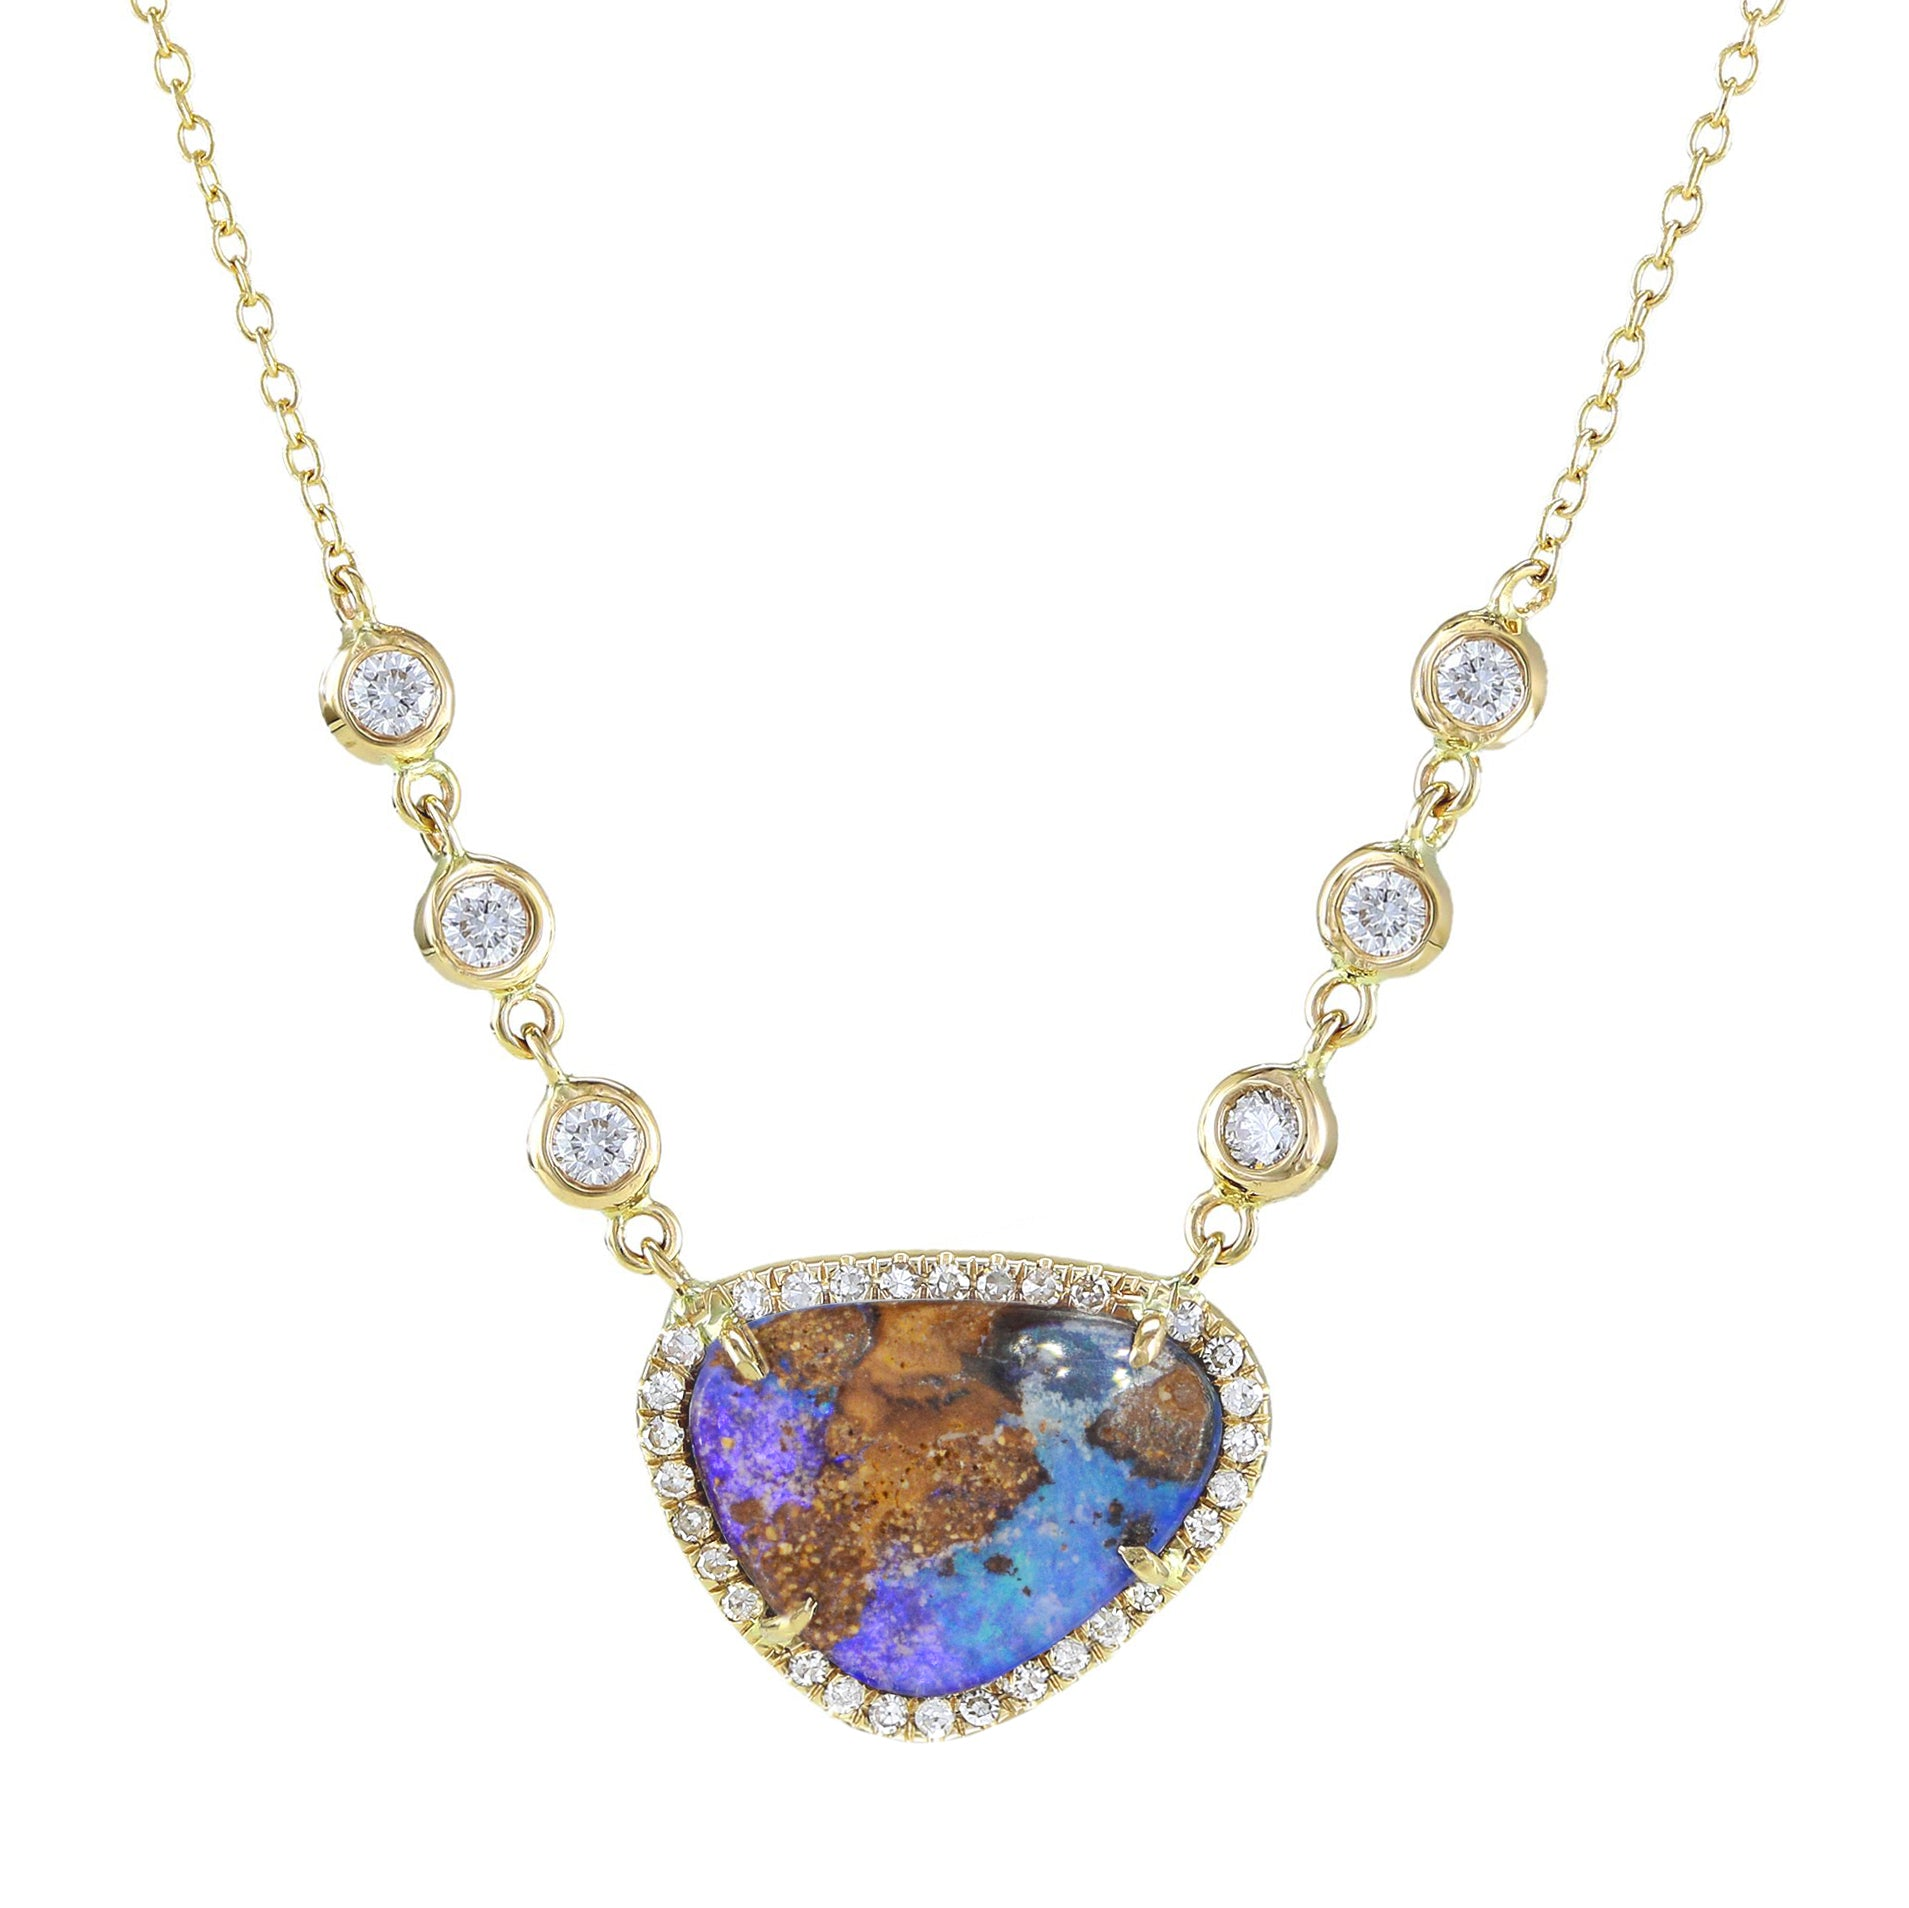 Boulder Opal Necklace With Diamonds in 14k Gold